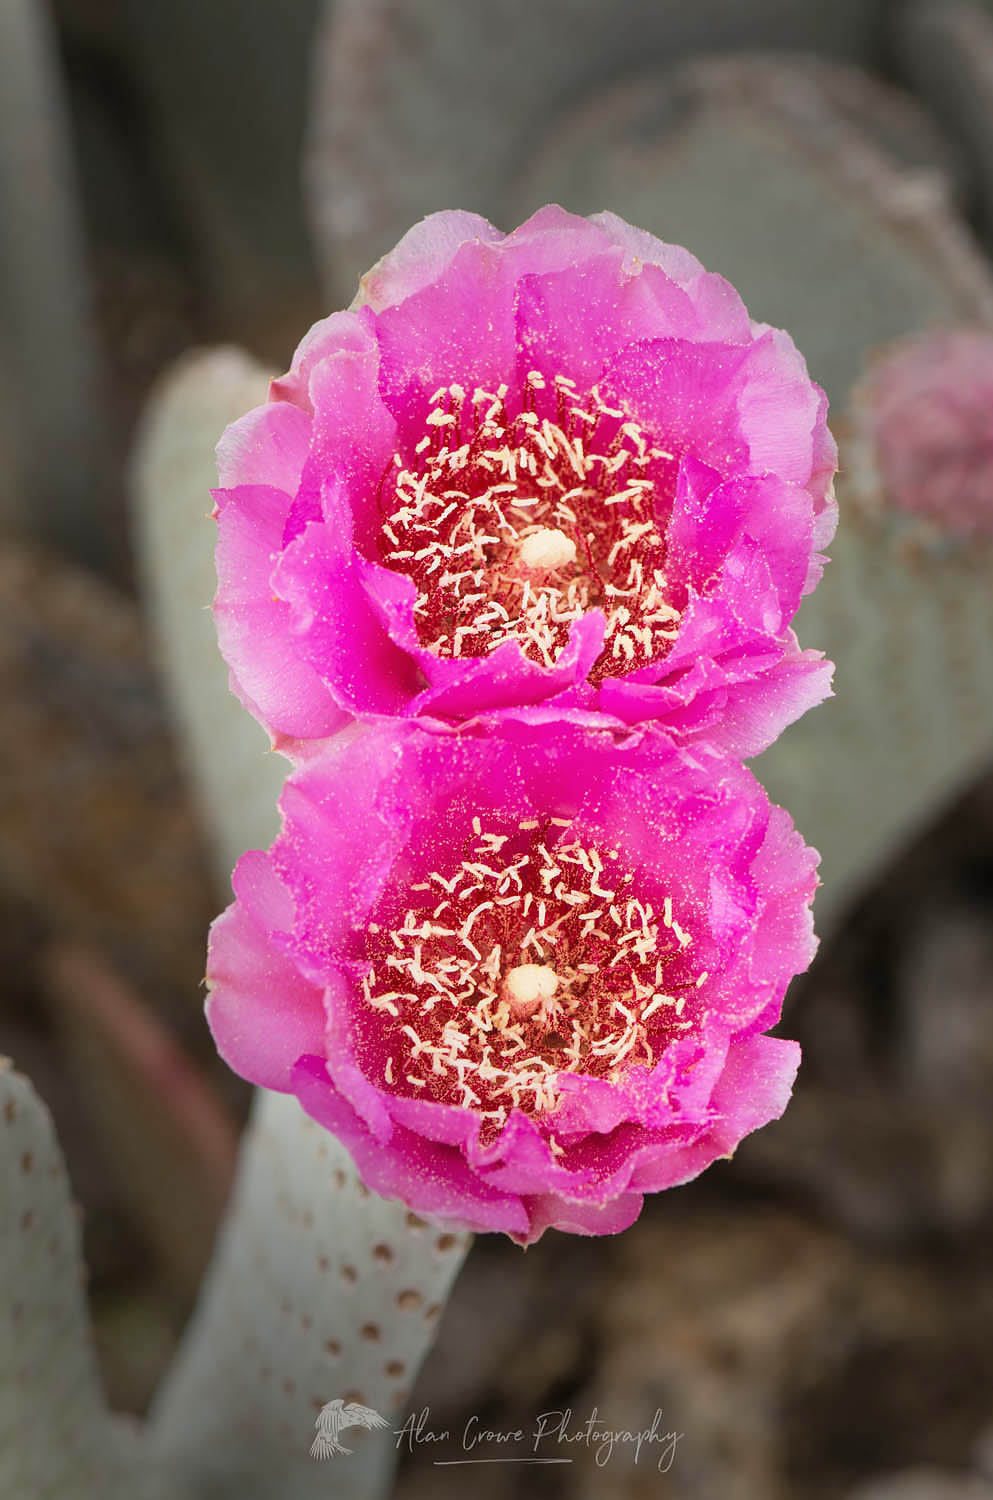 Beavertail Cactus (Opuntia basilaris) flowers